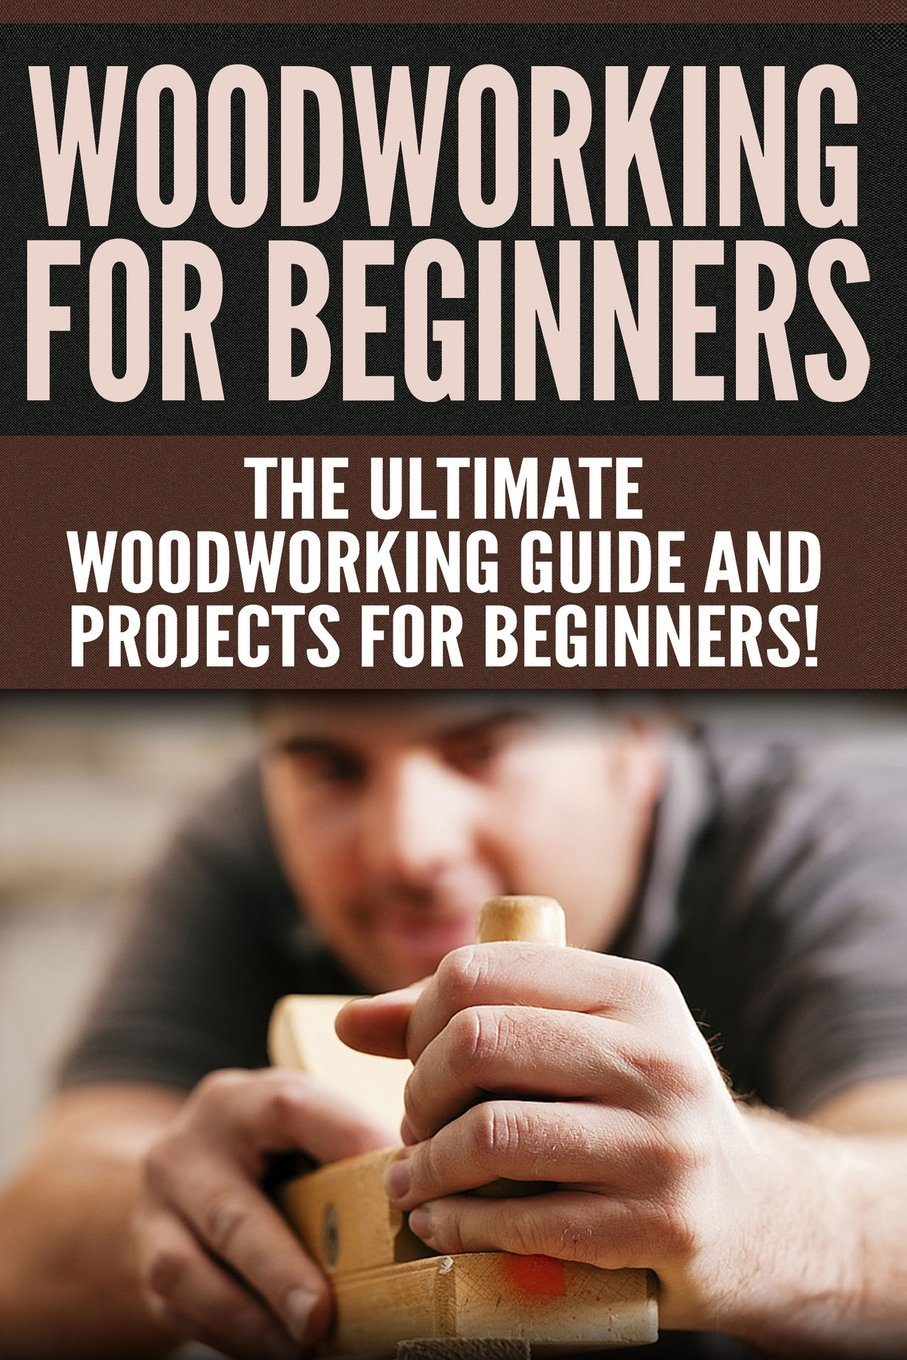 WOODWORKING for Beginners: The Ultimate Woodworking Guide and Projects for Beginners! PDF